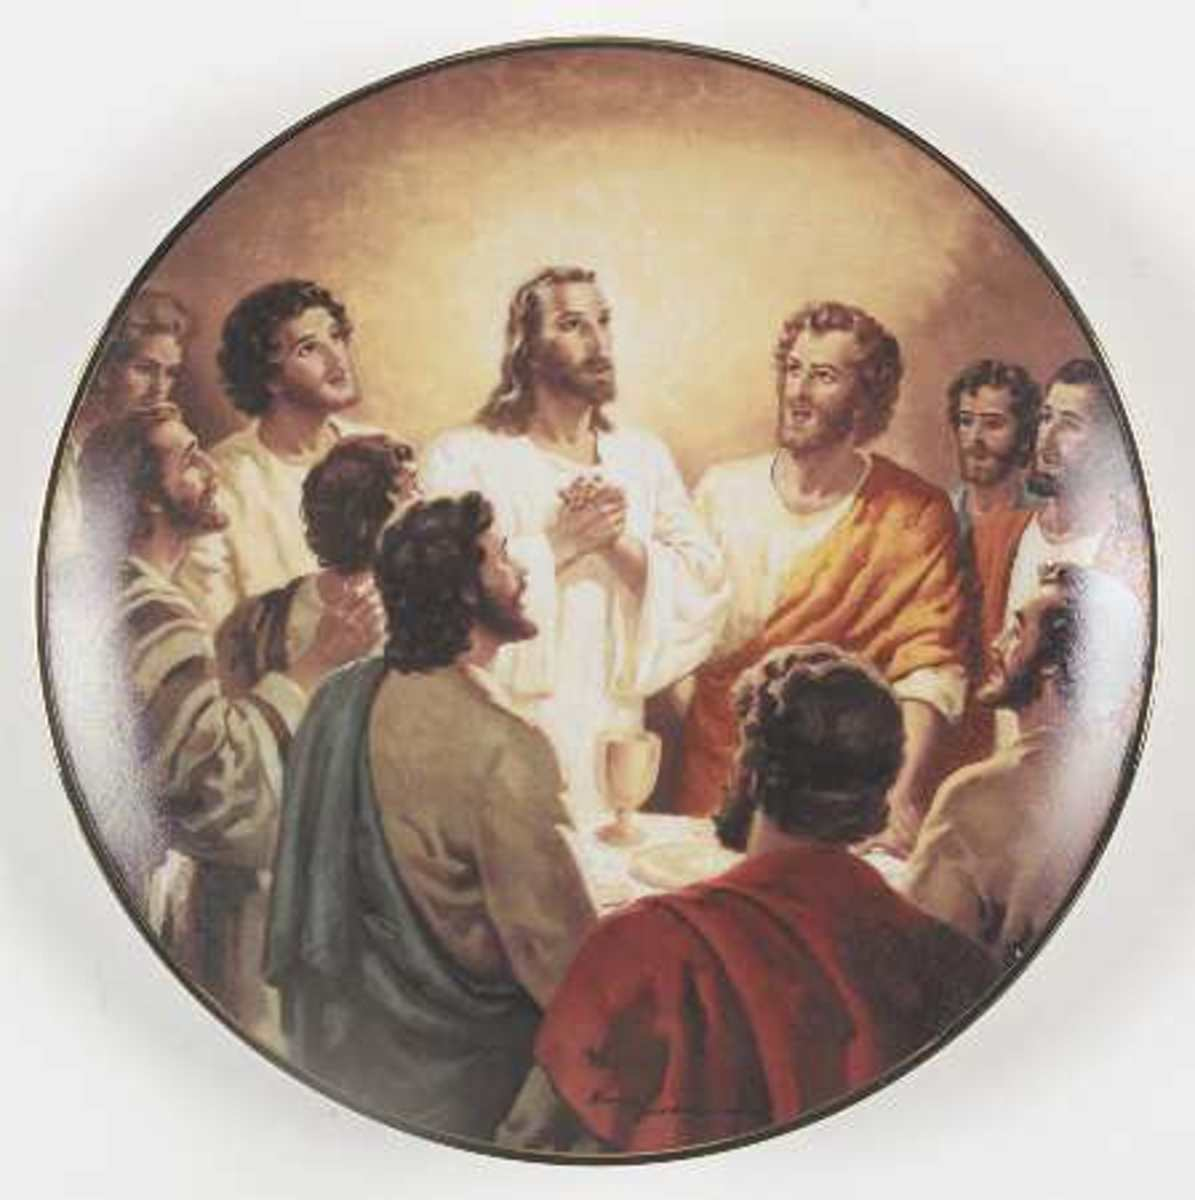 Do Christians Practice Cannibalism When They Participate in Holy Communion (Lord's Supper)?